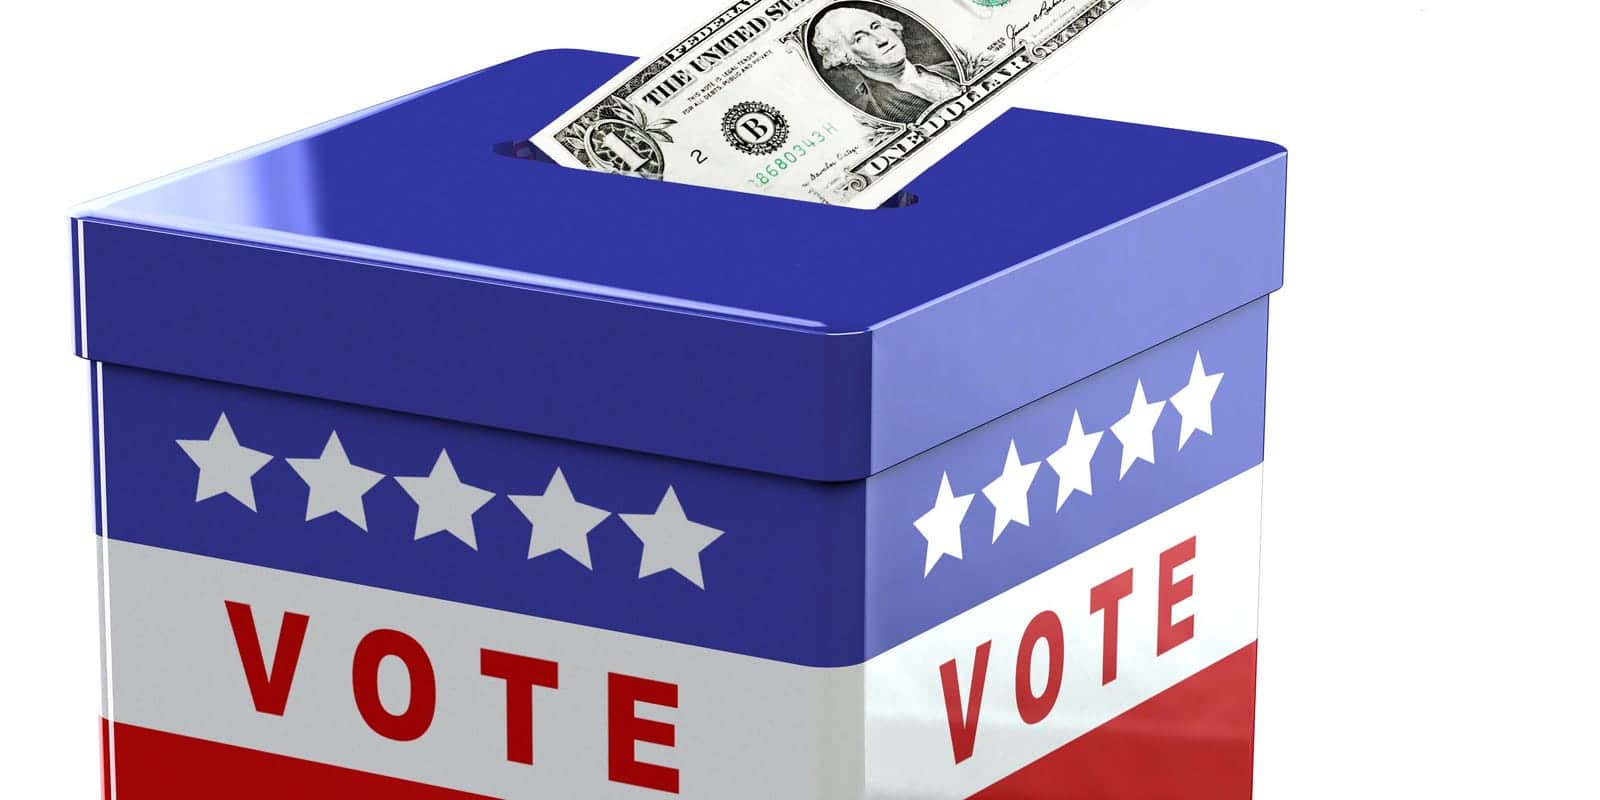 Ballot Box and Dollar Bill